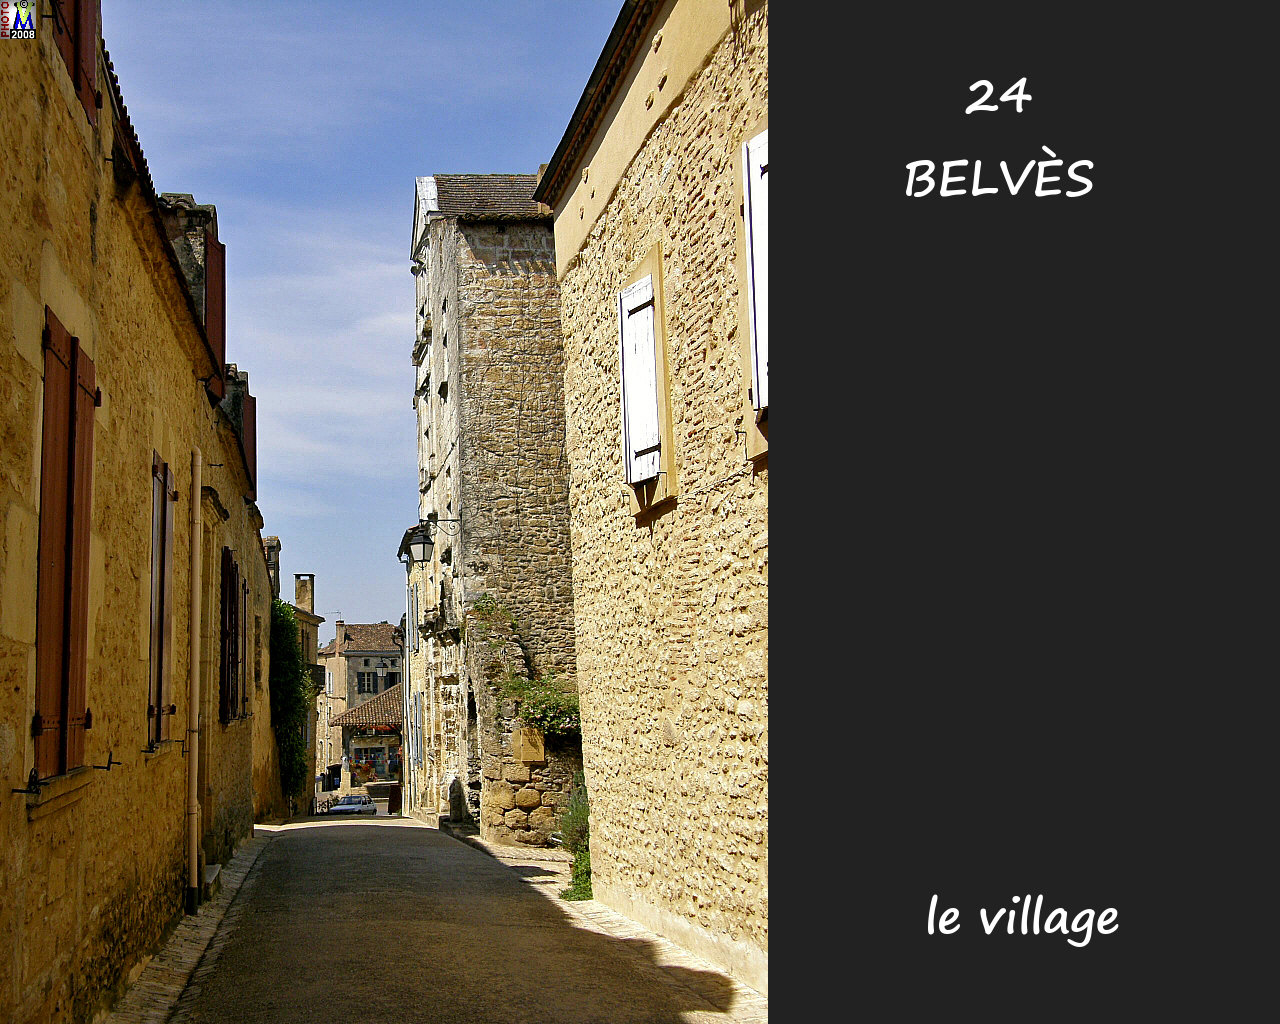 24BELVES_village_162.jpg